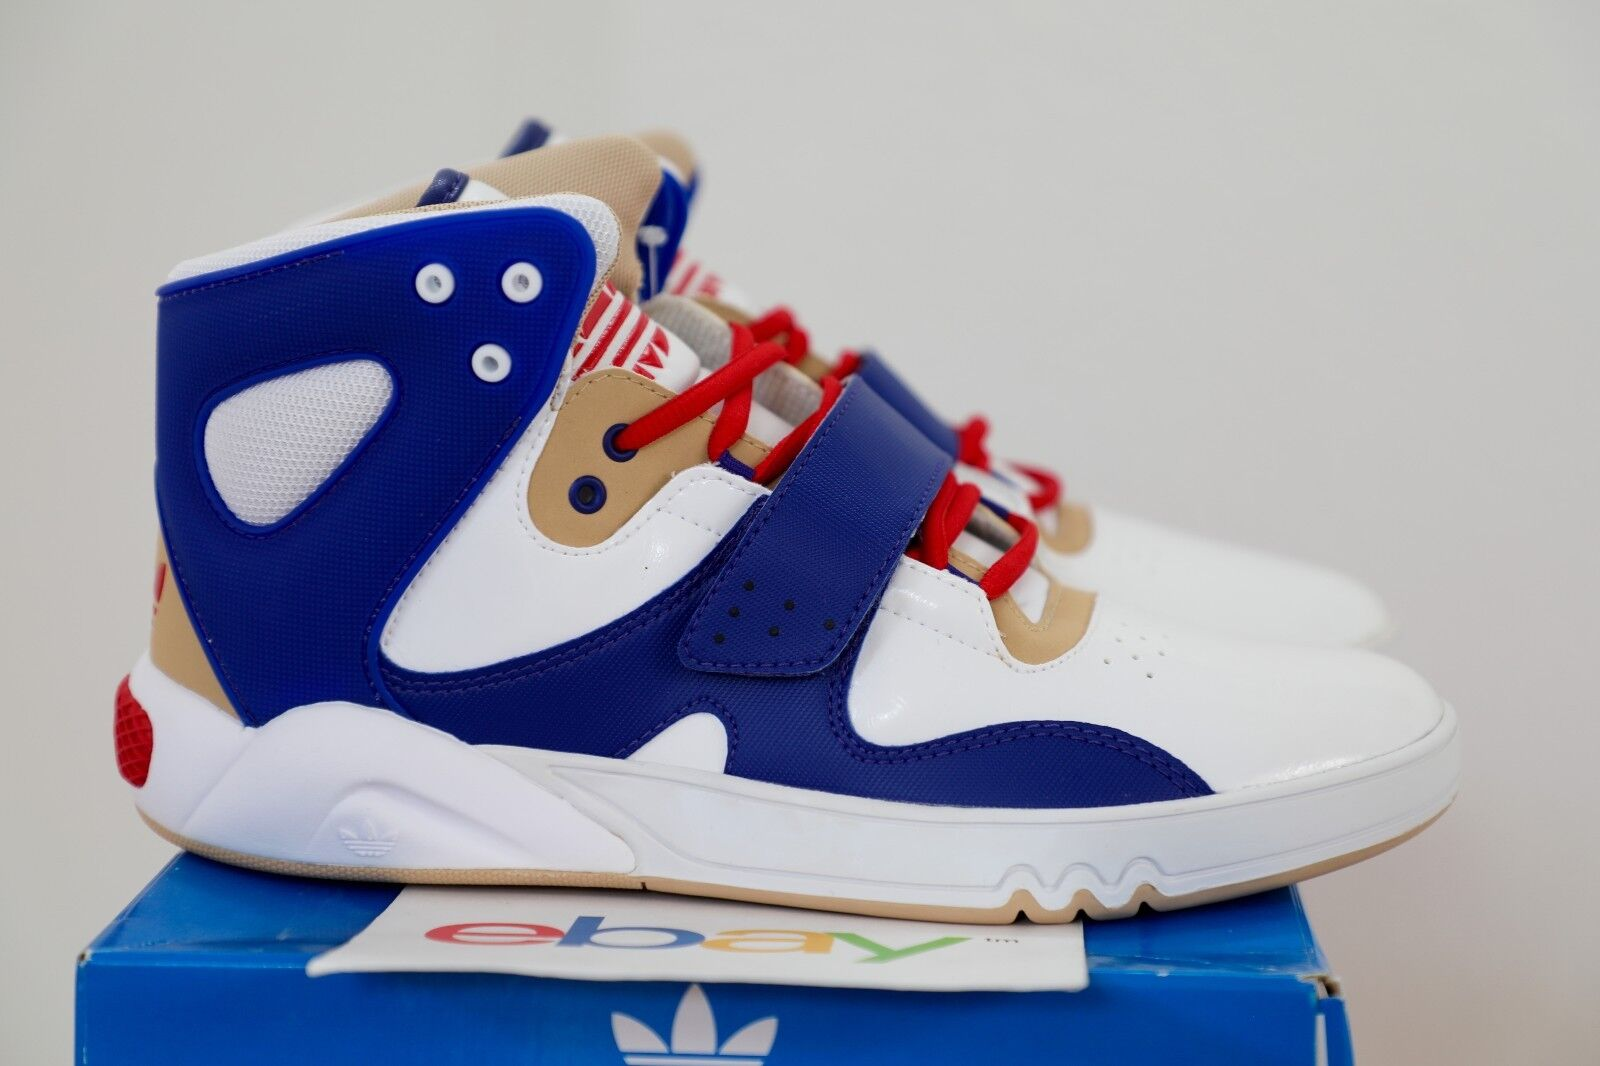 DS Adidas Roundhouse Mid TOADSTOOL Size 8-12 white bluee red usa 41-14761-1-04